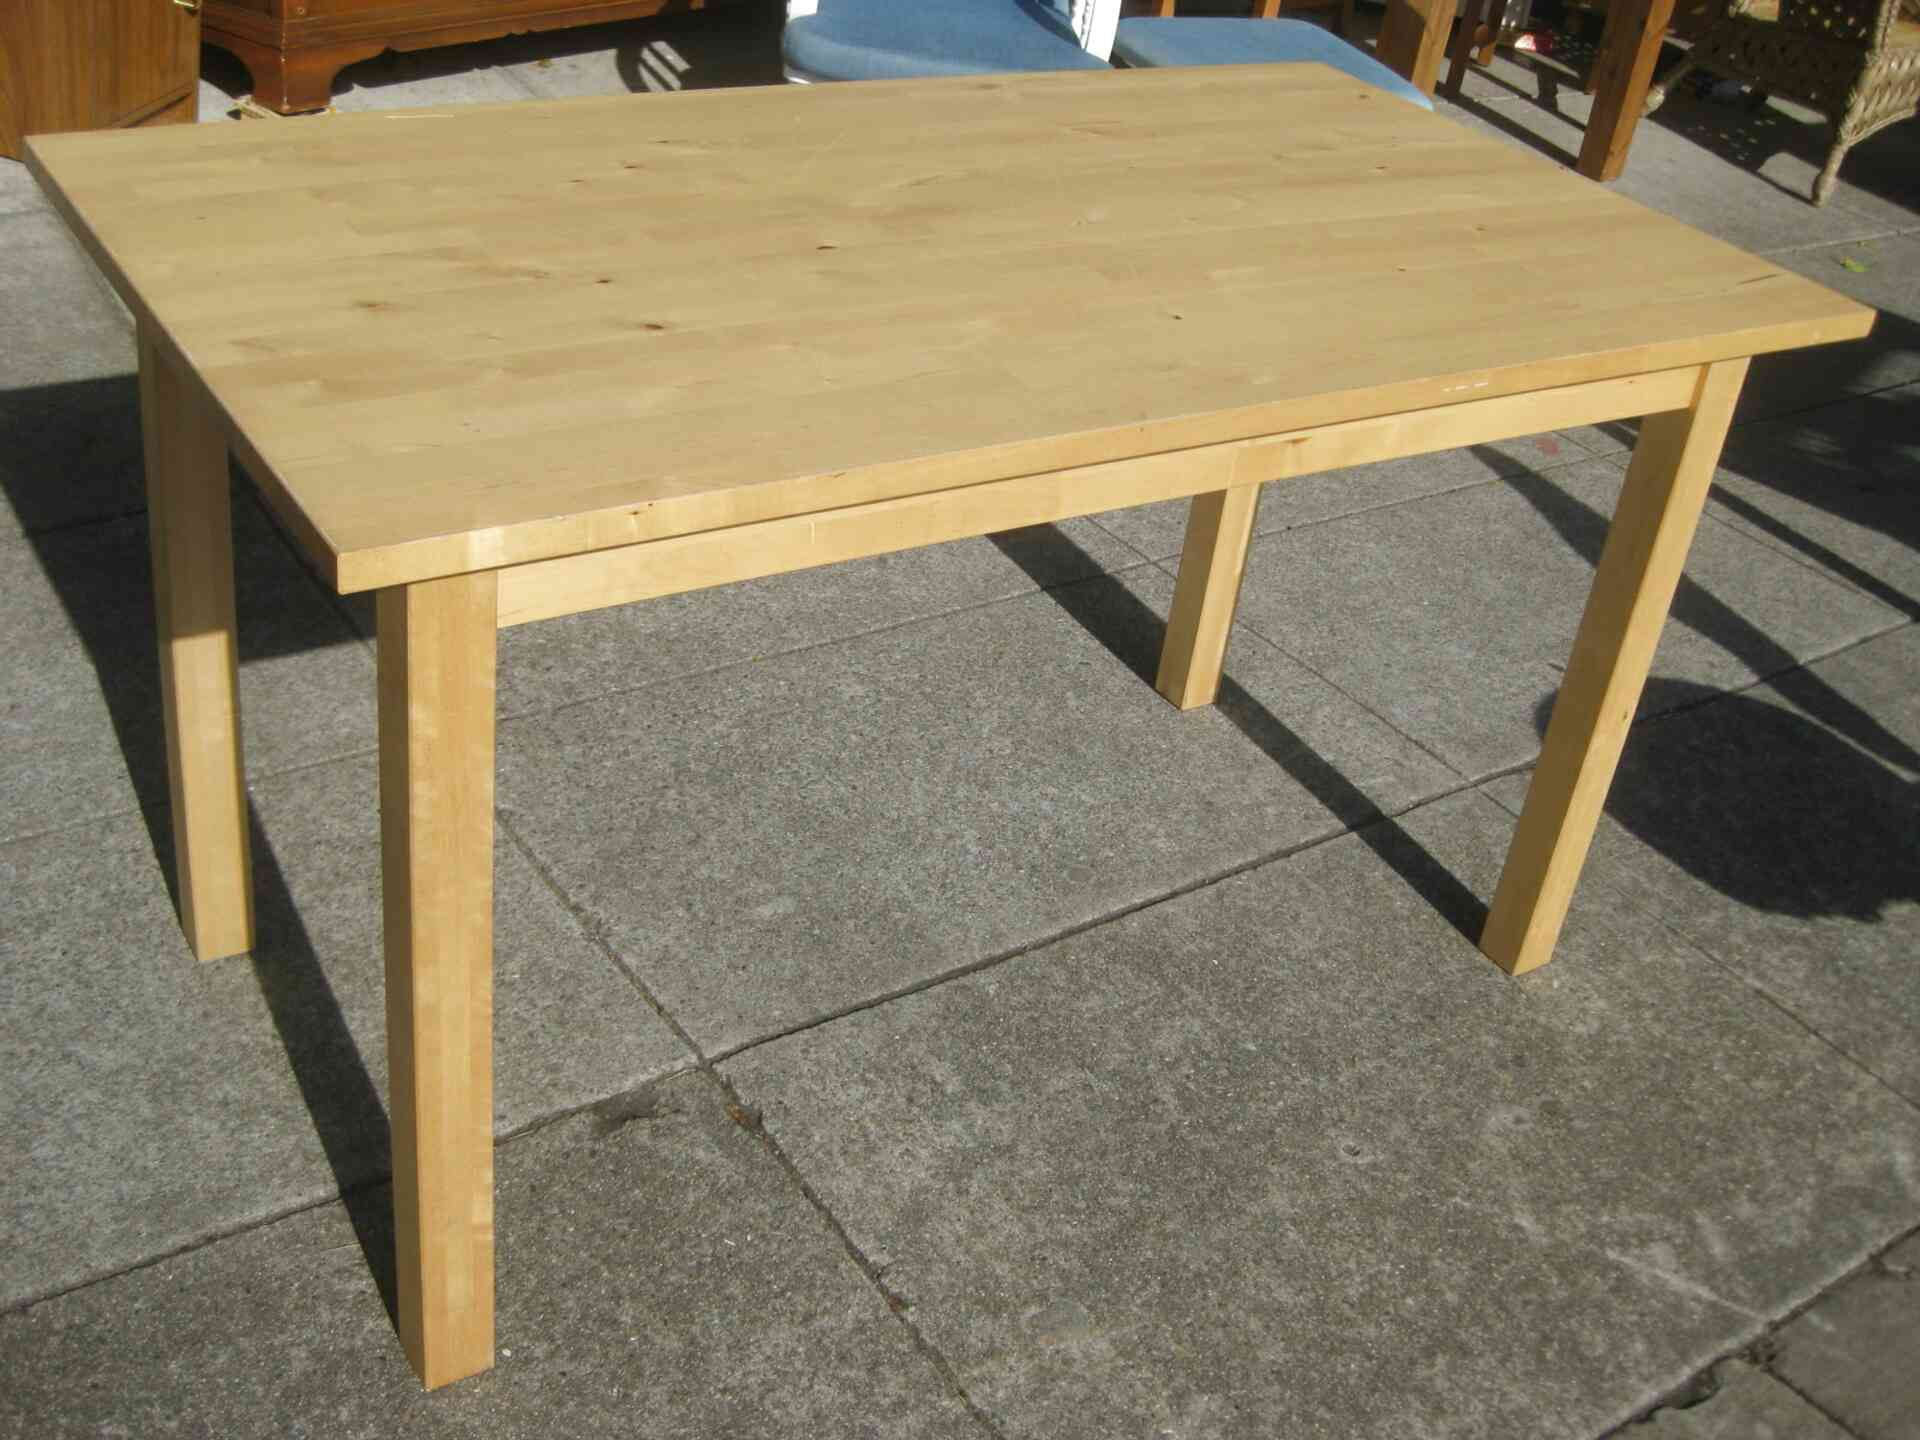 table norden ikea d occasion plus que